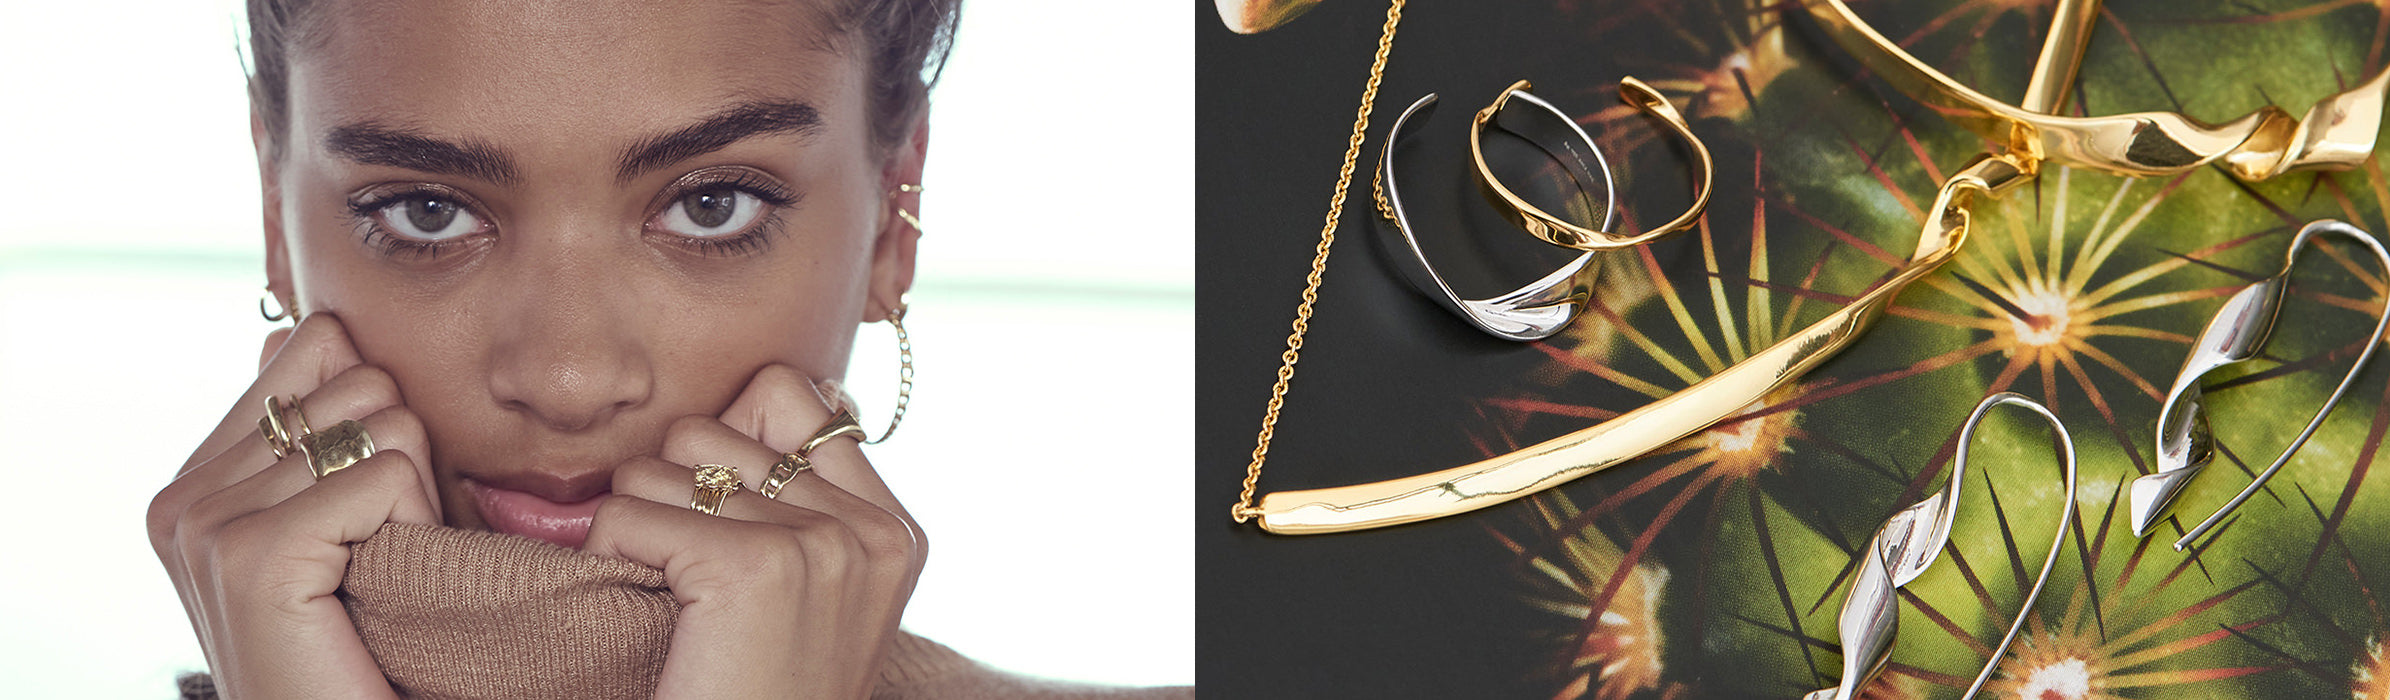 Twister Jewellery Collection by Ania Haie